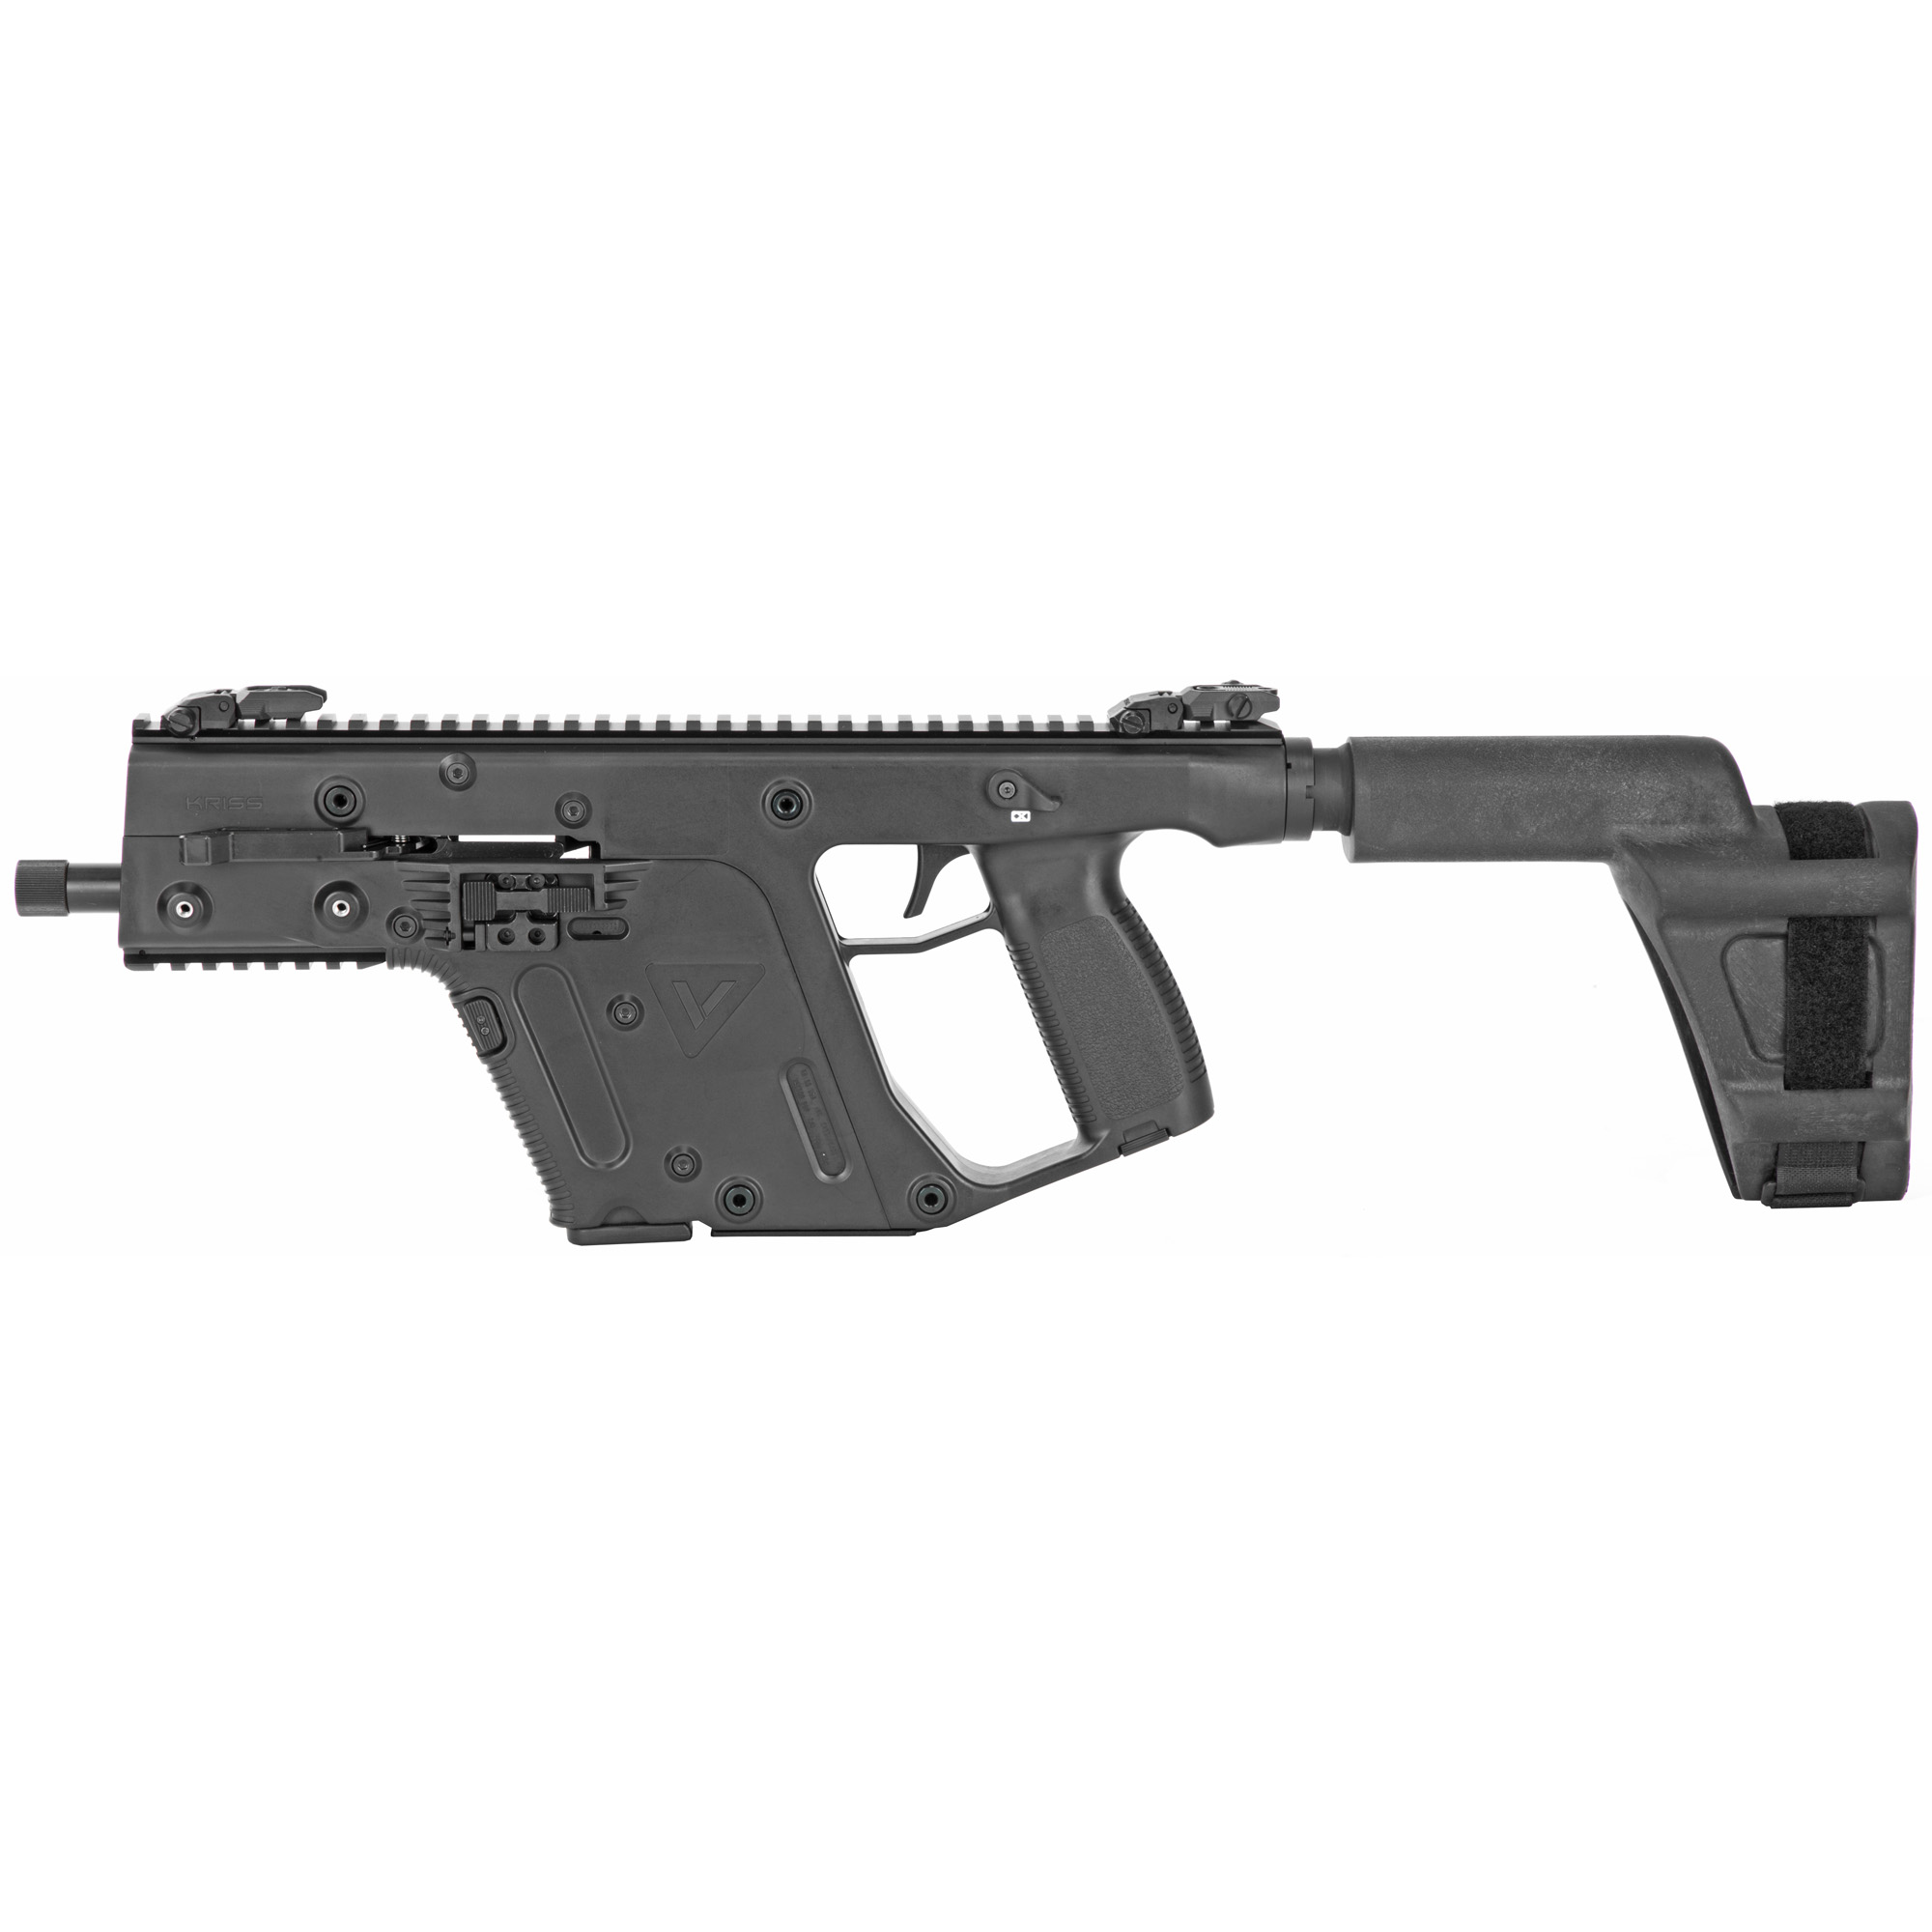 """The KRISS Super V Recoil Mitigation System uses an innovative nonlinear operating system that revectors energy down and away from the shooter's shoulder to dramatically reduce felt recoil and muzzle climb. This system allows the shooter to recover faster"""" for quicker and more accurate sequential shots. The KRISS Vector is designed to use the reliable and ubiquitous standard Glock(TM) magazines."""